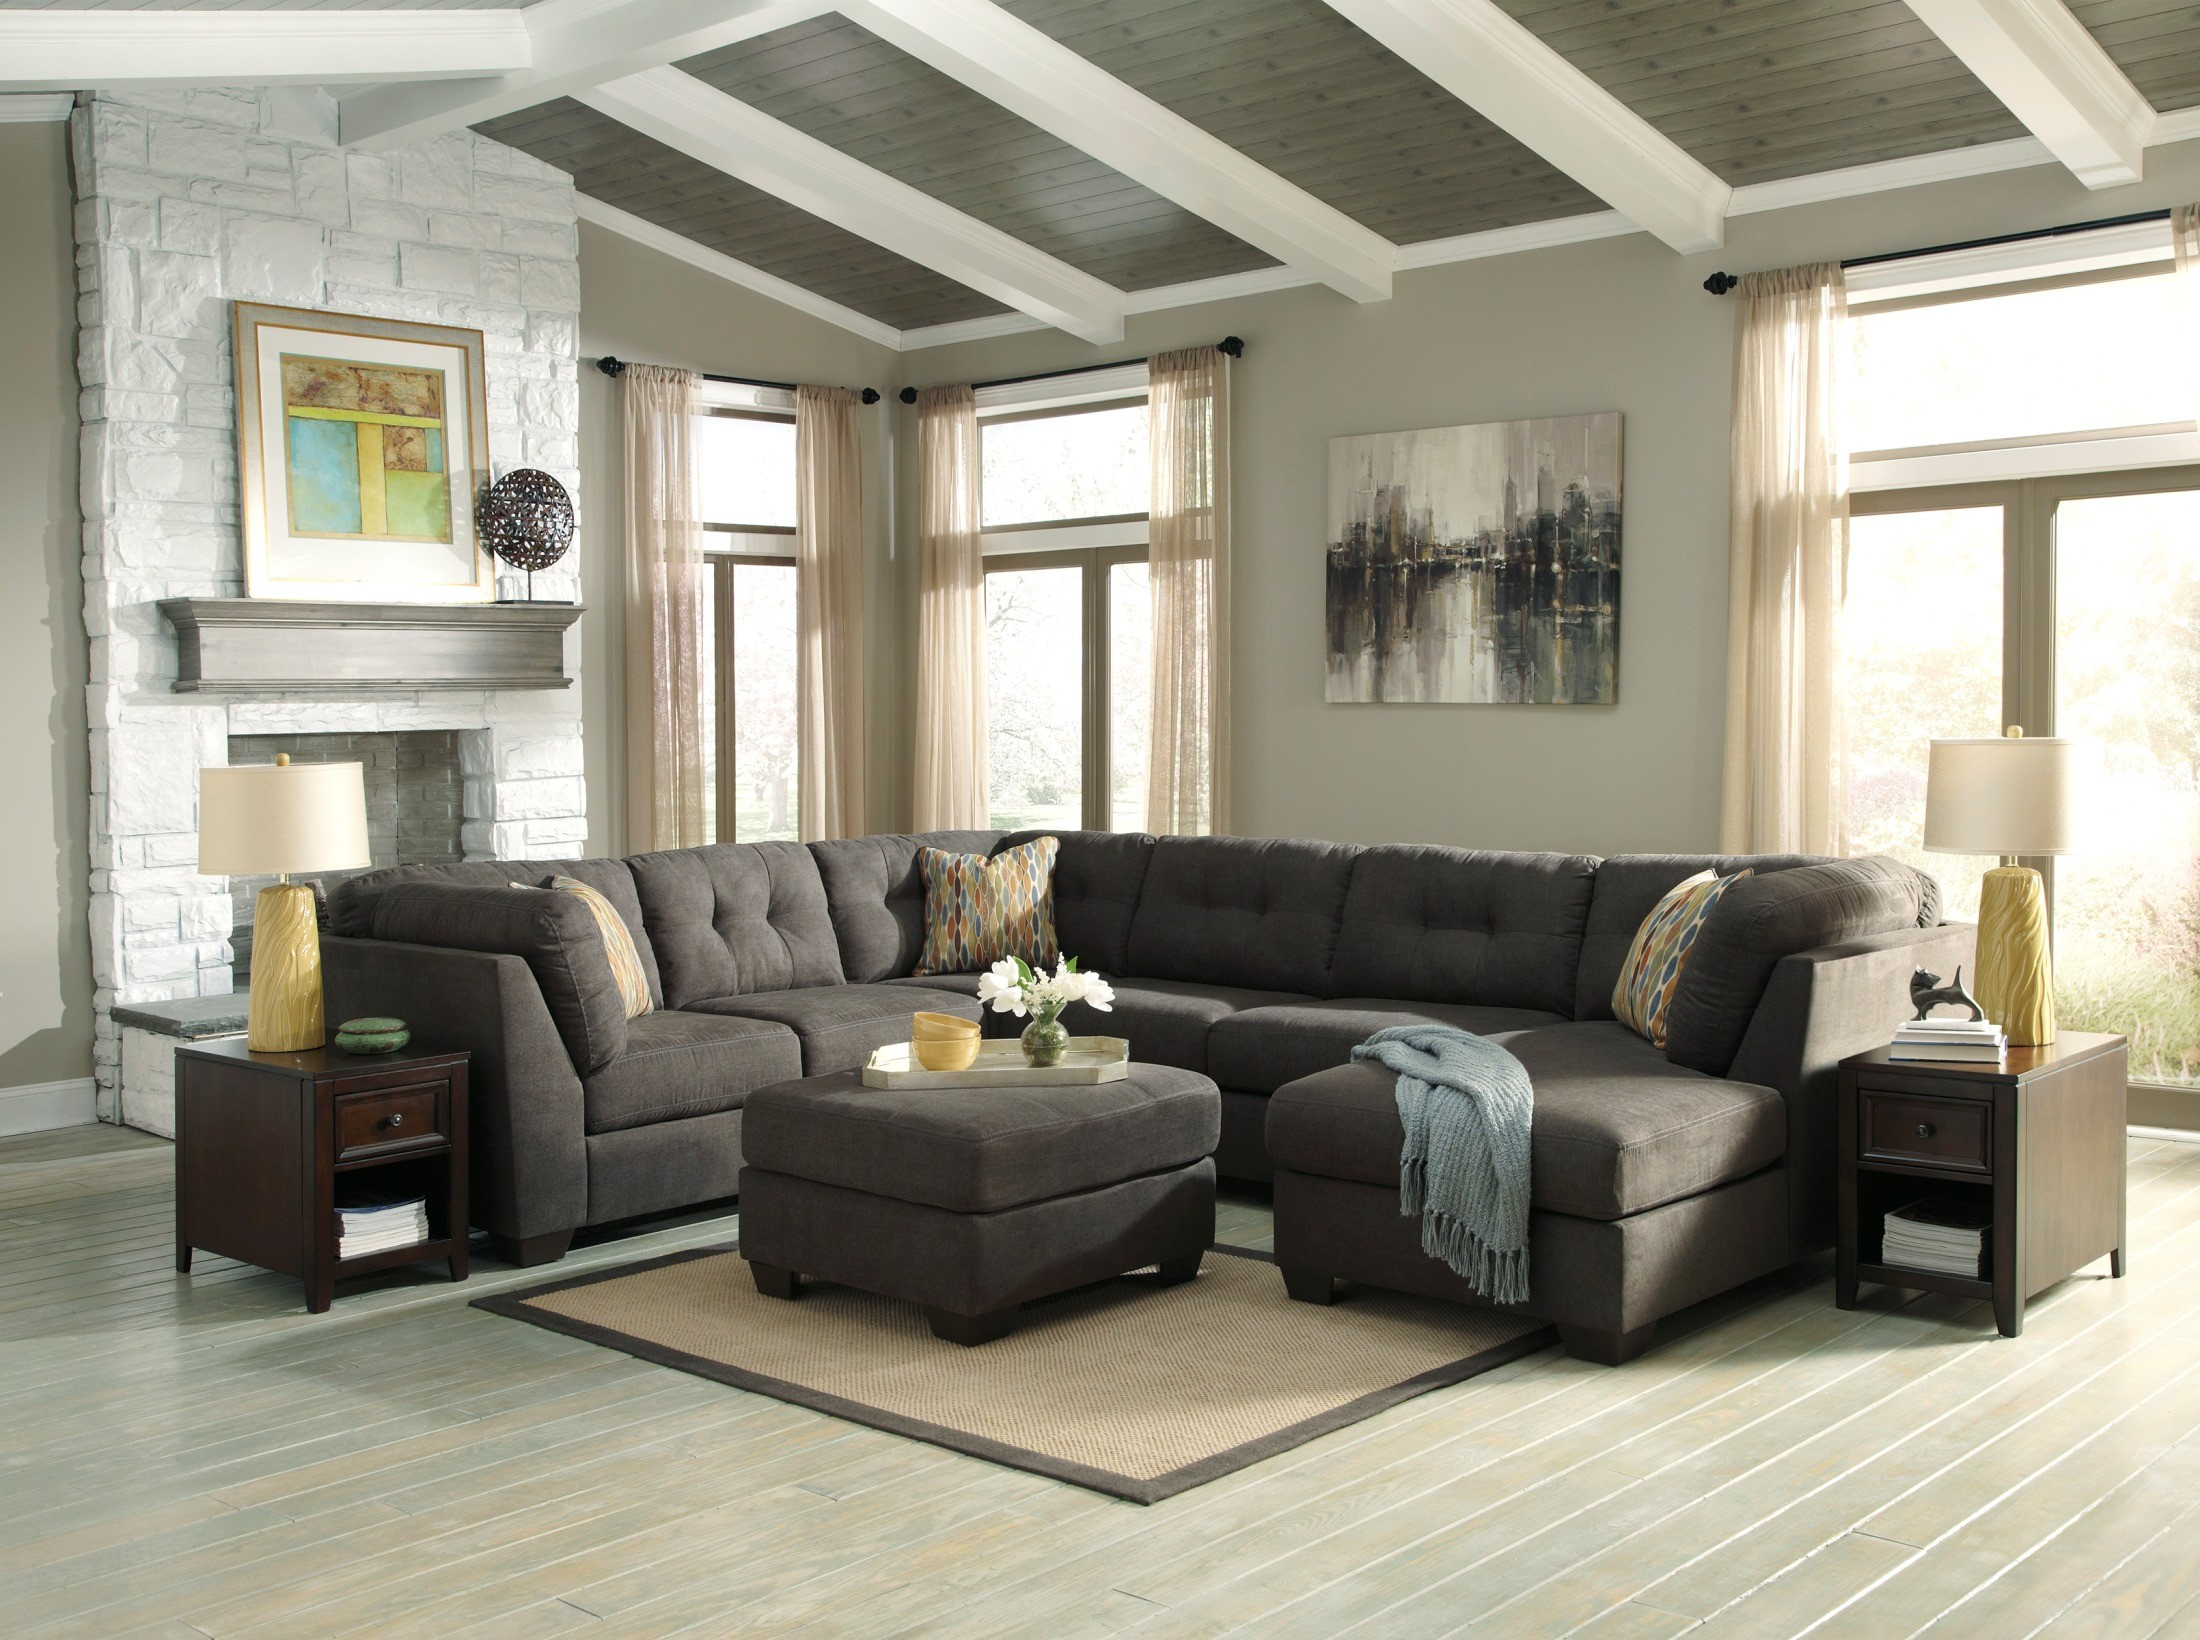 Delta City Steel Raf Sectional From Ashley 19700 38 34 17